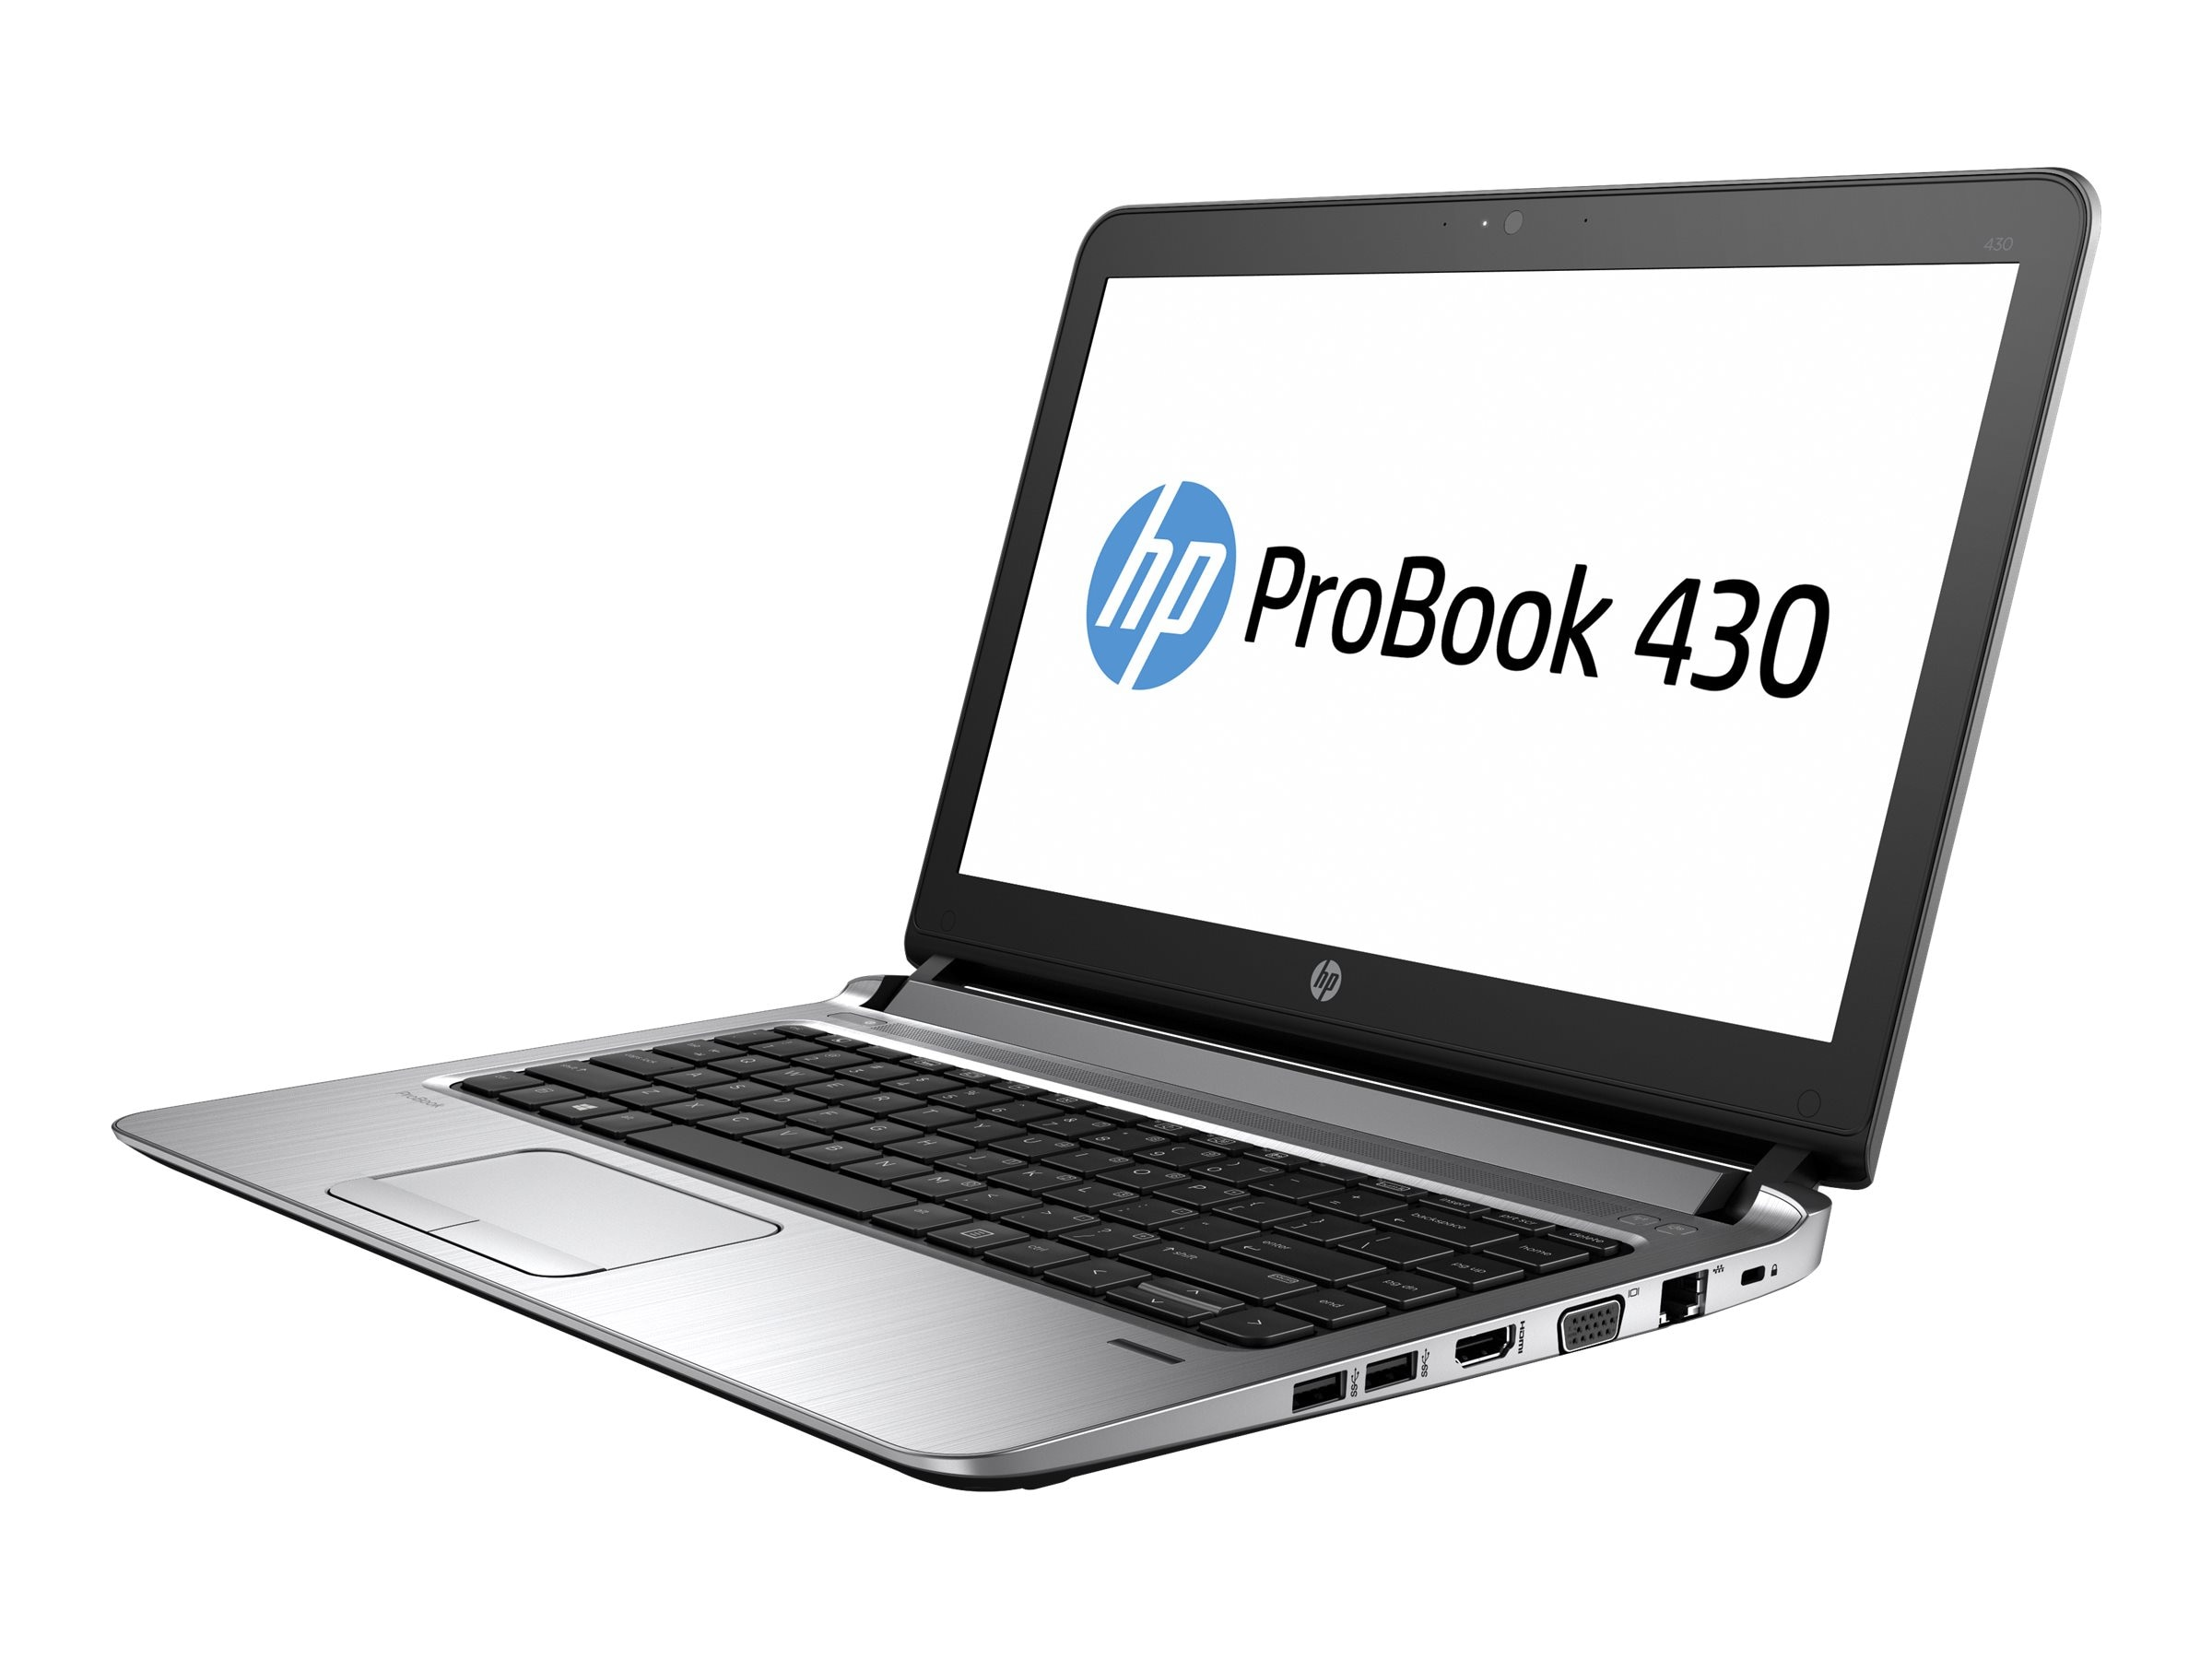 HP EliteBook 430 G3 2.5GHz Core i7 13.3in display